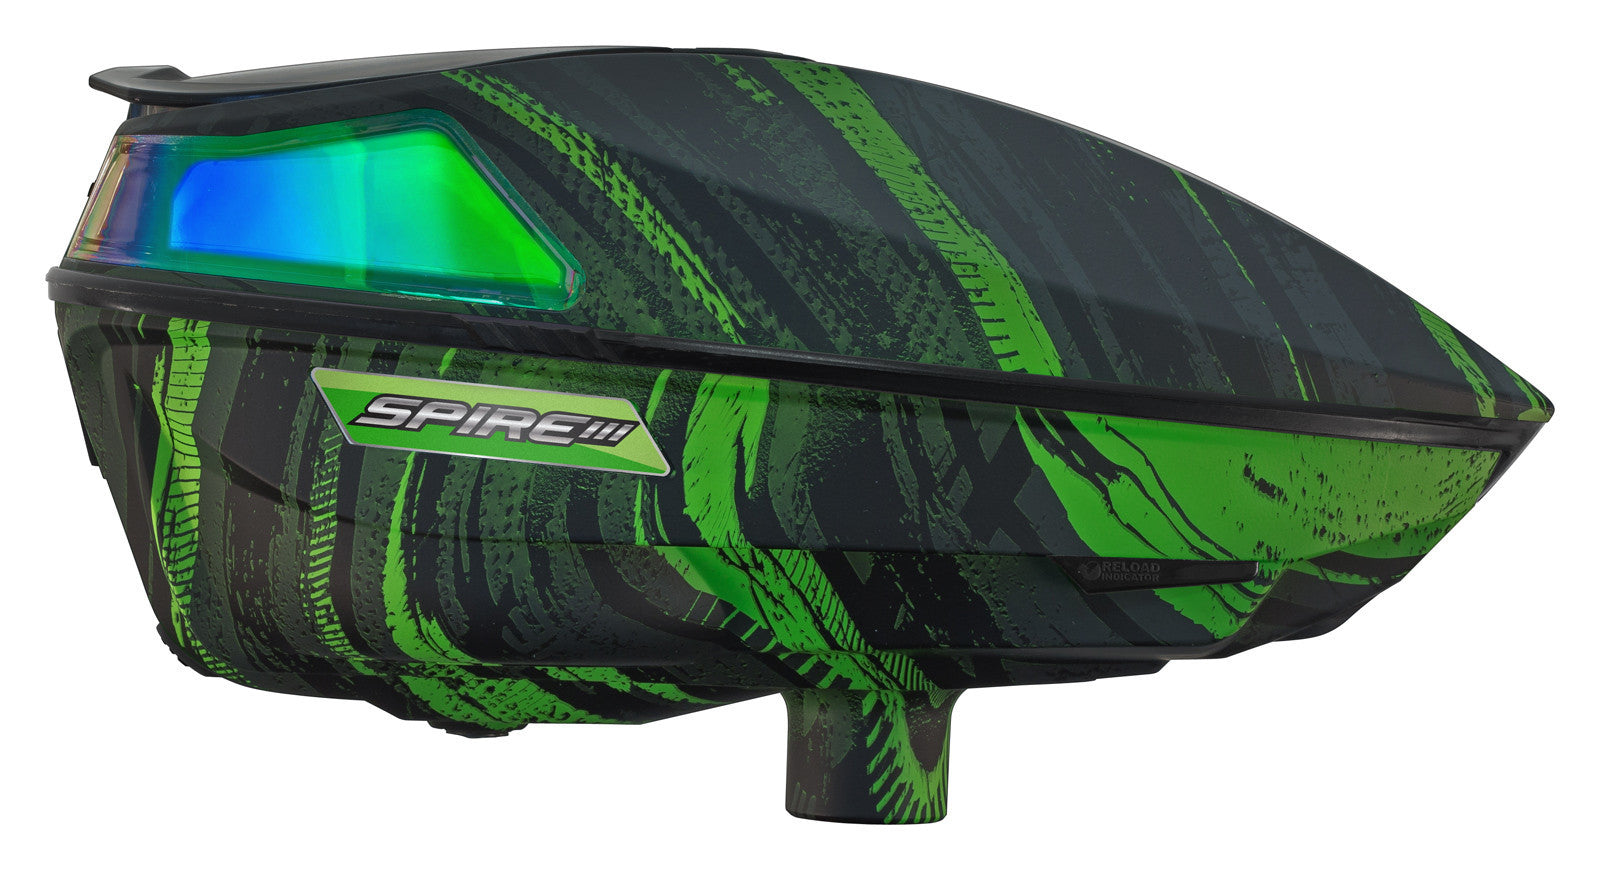 Virtue Spire iii Loader - Graphic Emerald